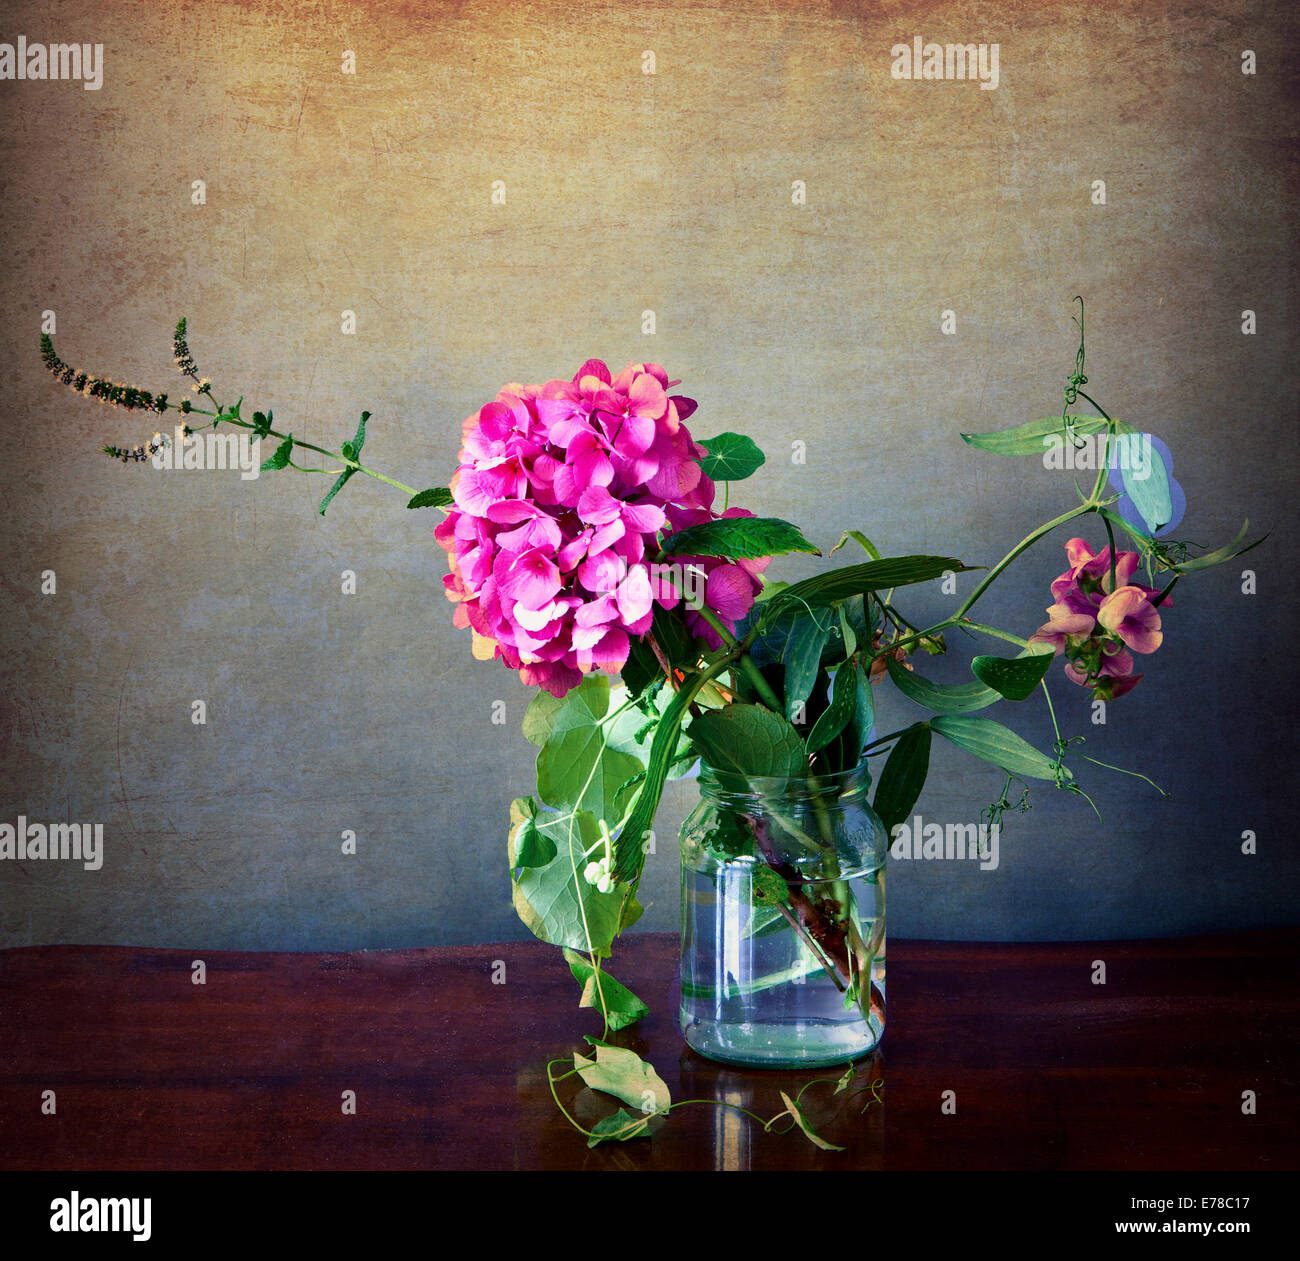 Pink Hydrangea And Field Flowers In A Glass With Vintage Texture Retro Instagram Like Effects Added